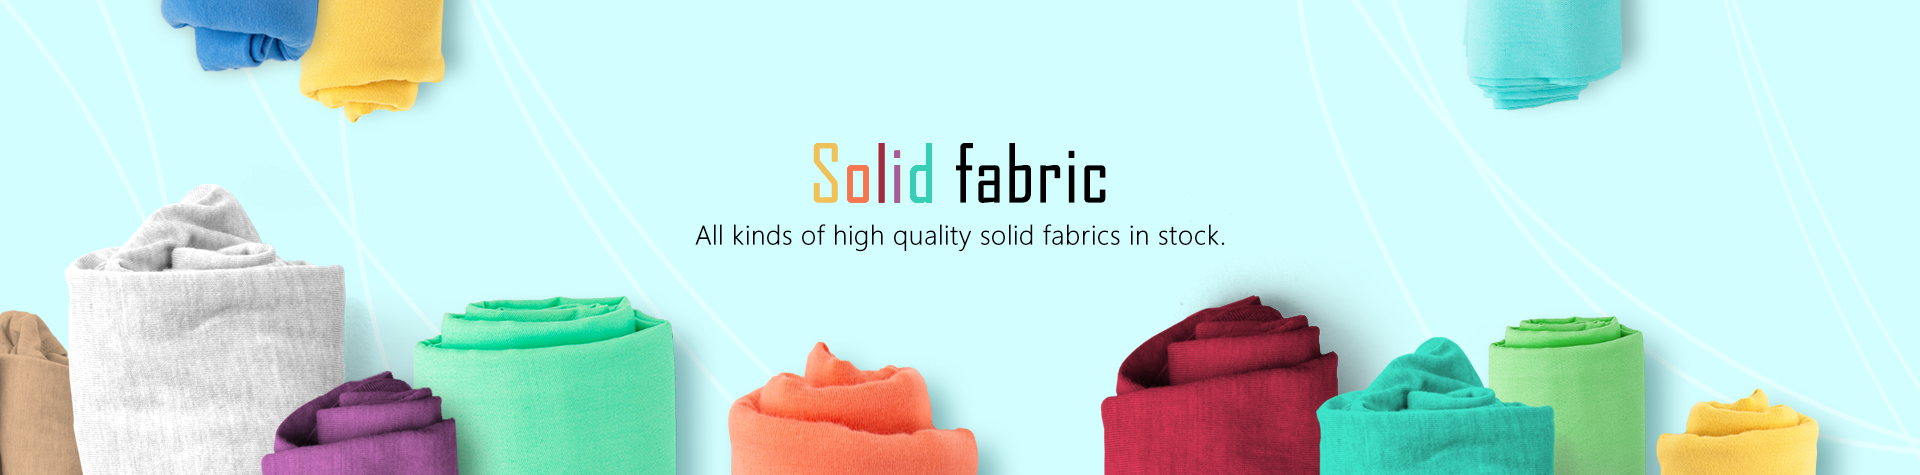 Solid fabric in stock